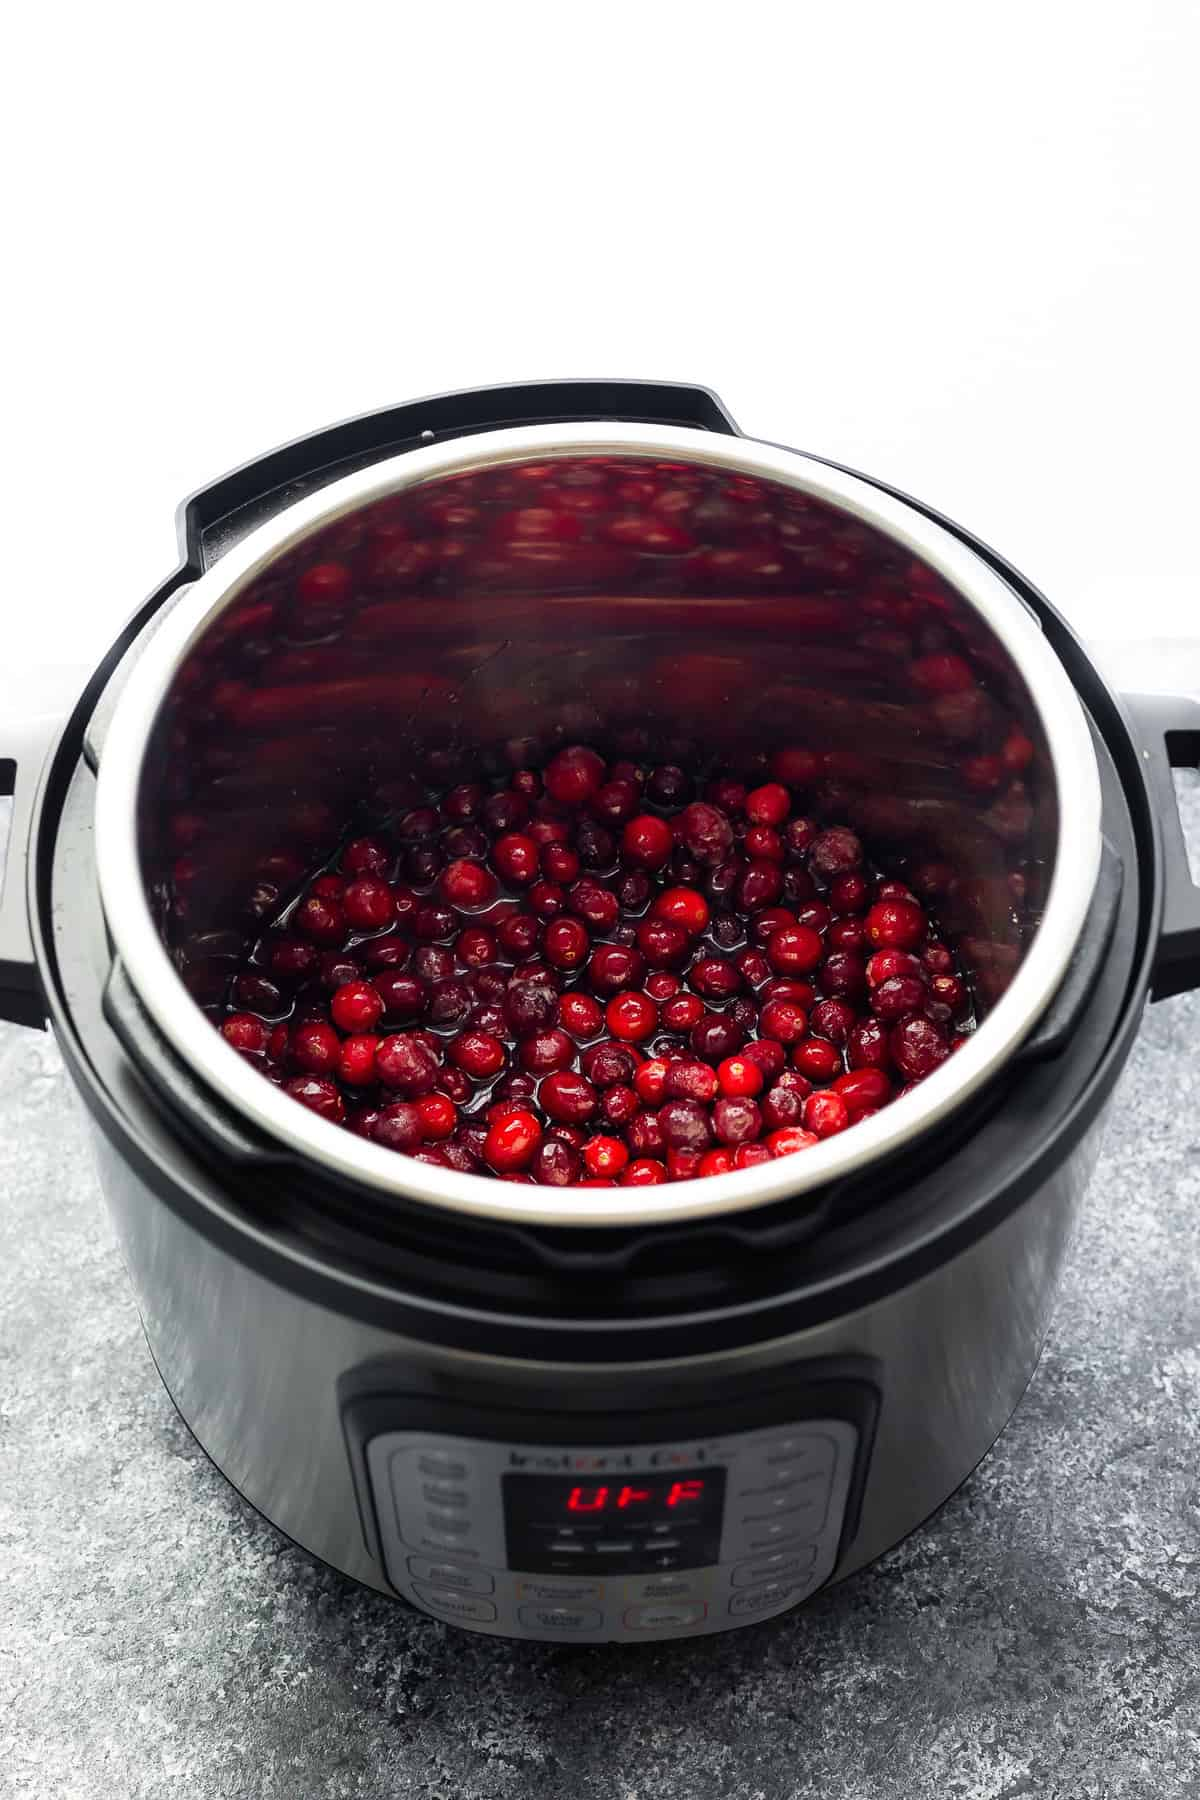 cranberry sauce ingredients in the instant pot before cooking